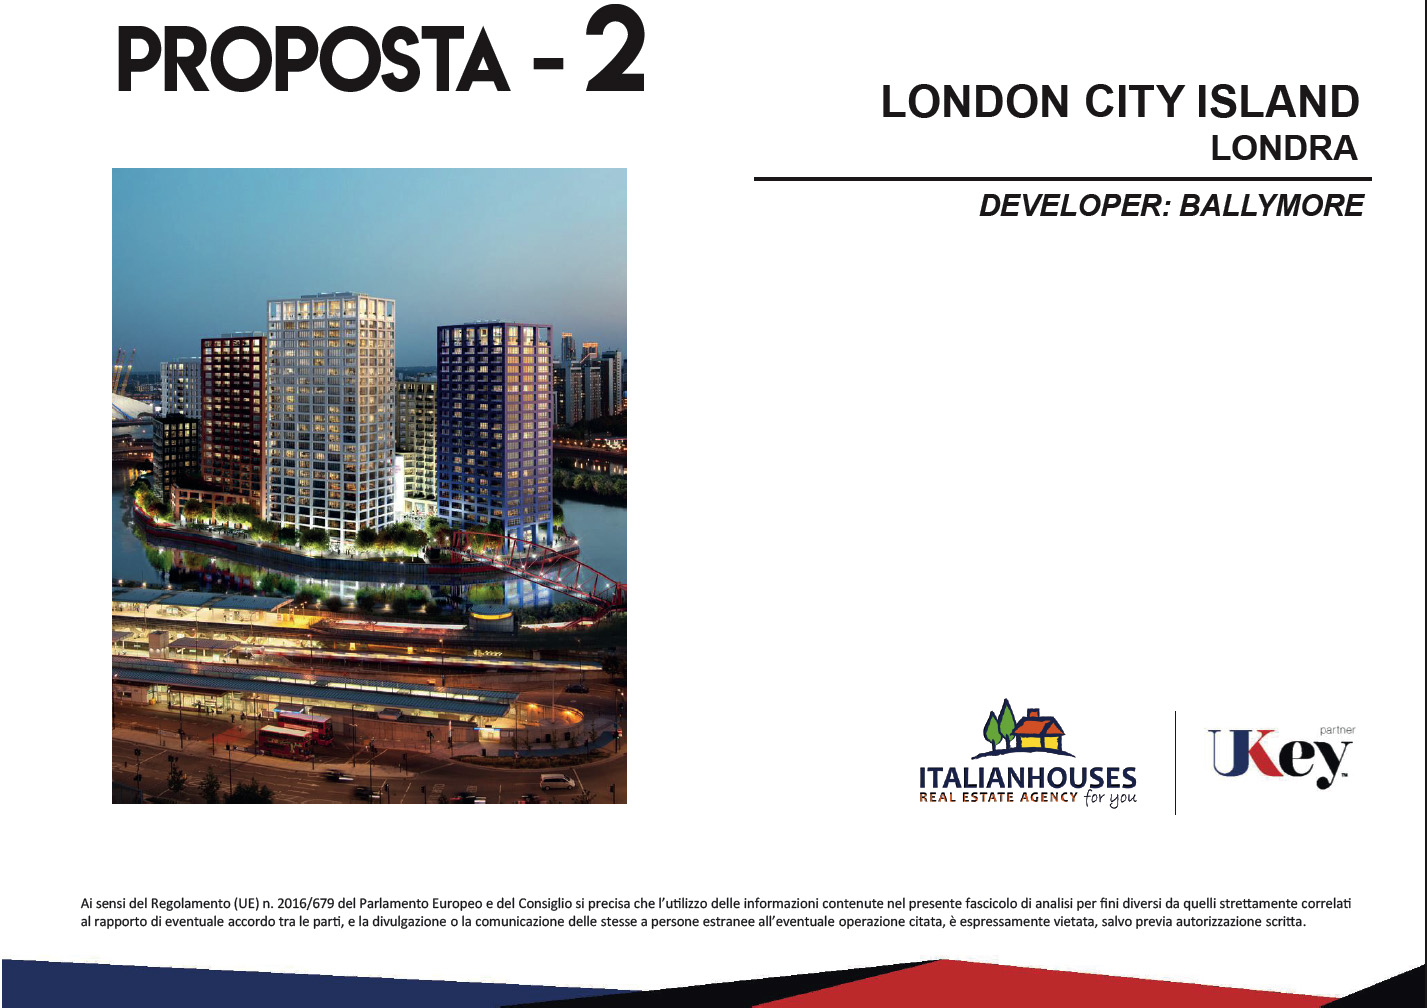 LONDON CITY ISLAND LEAMOUTH – DEVELOPER: BALLYMORE